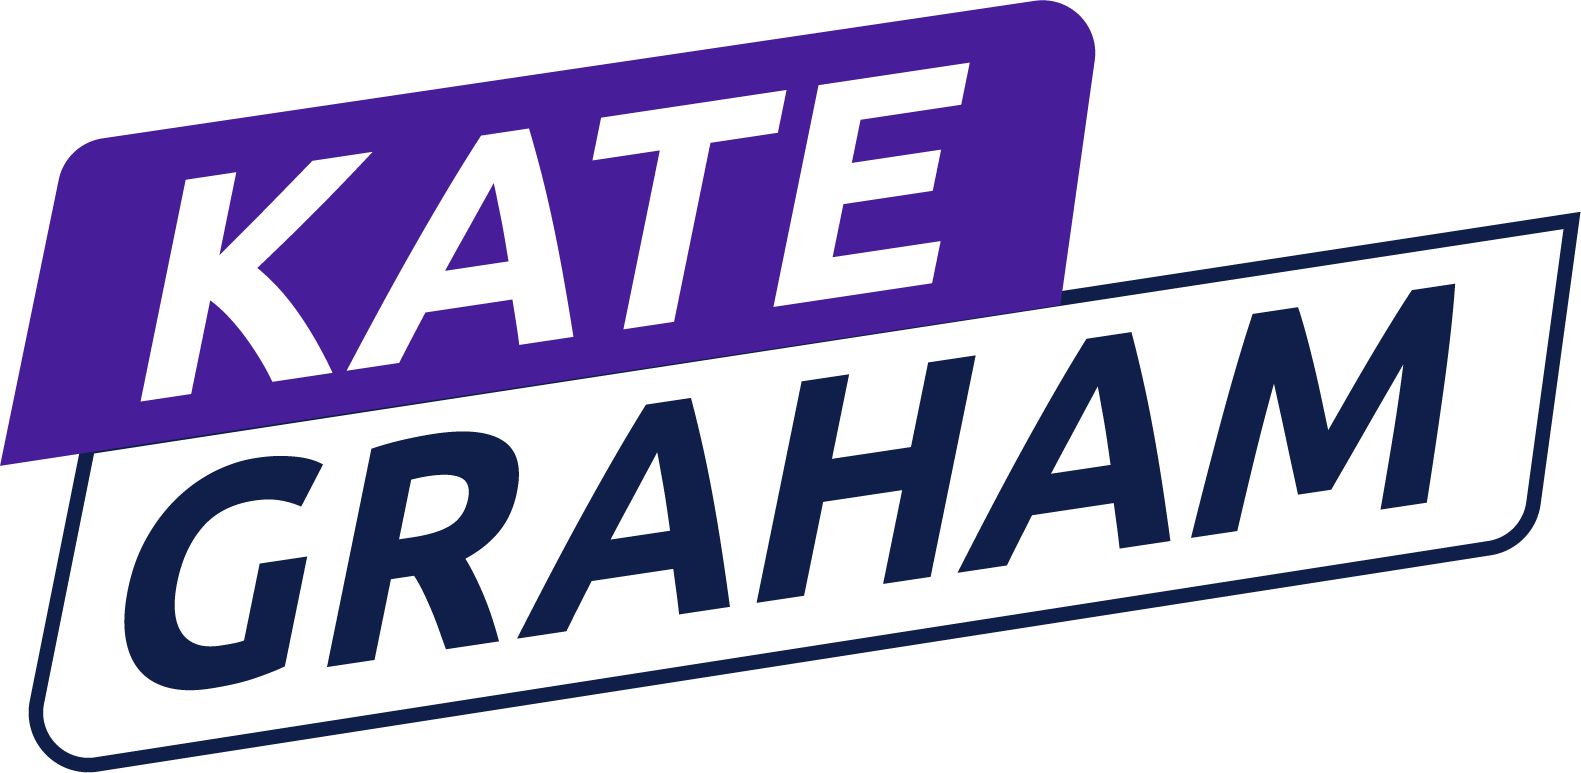 Kate Graham logo